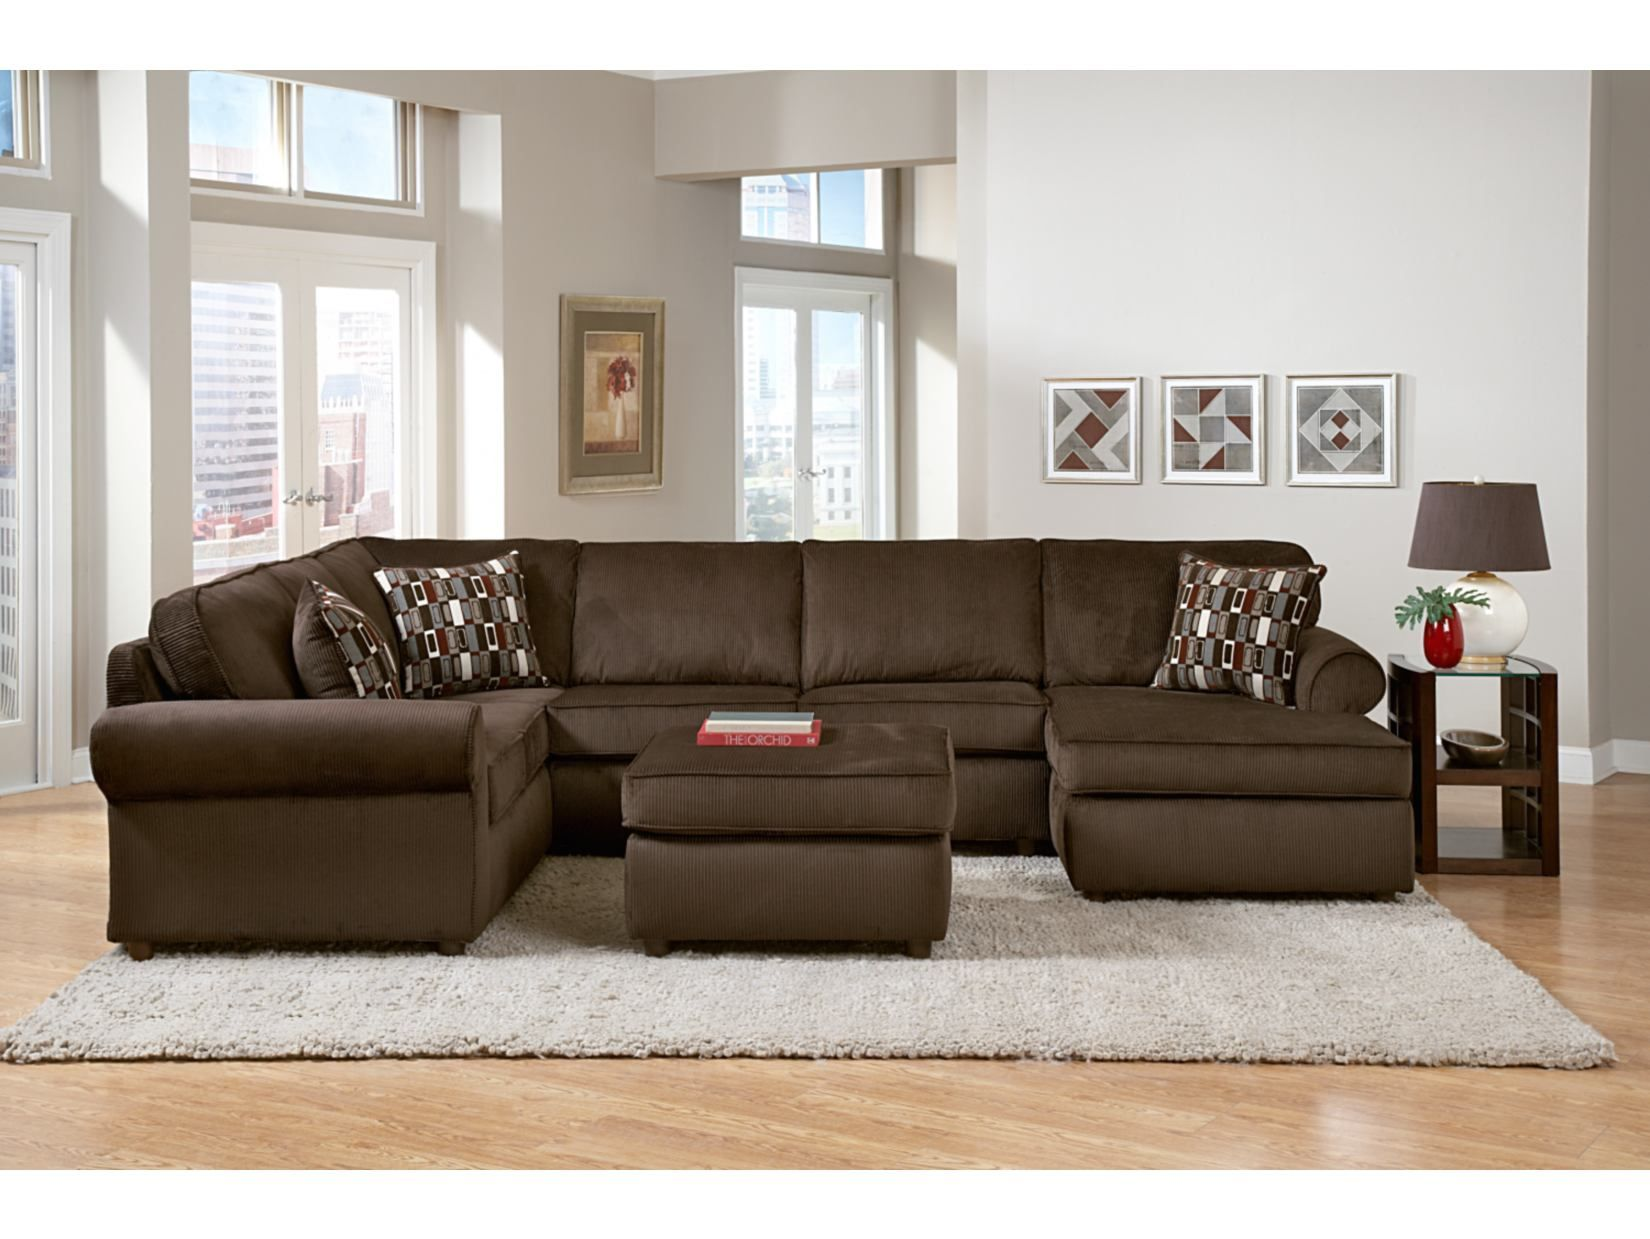 Value City Furniture Living Room Monarch Chocolate 3 Pc Sectional Value City Furniture